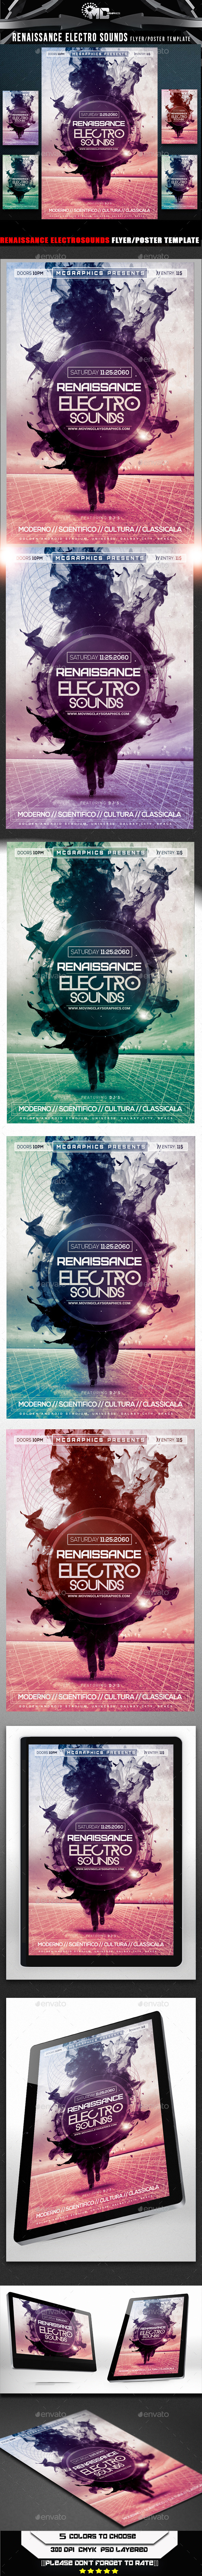 GraphicRiver Renaissance Electro Sounds Flyer Template 8960124